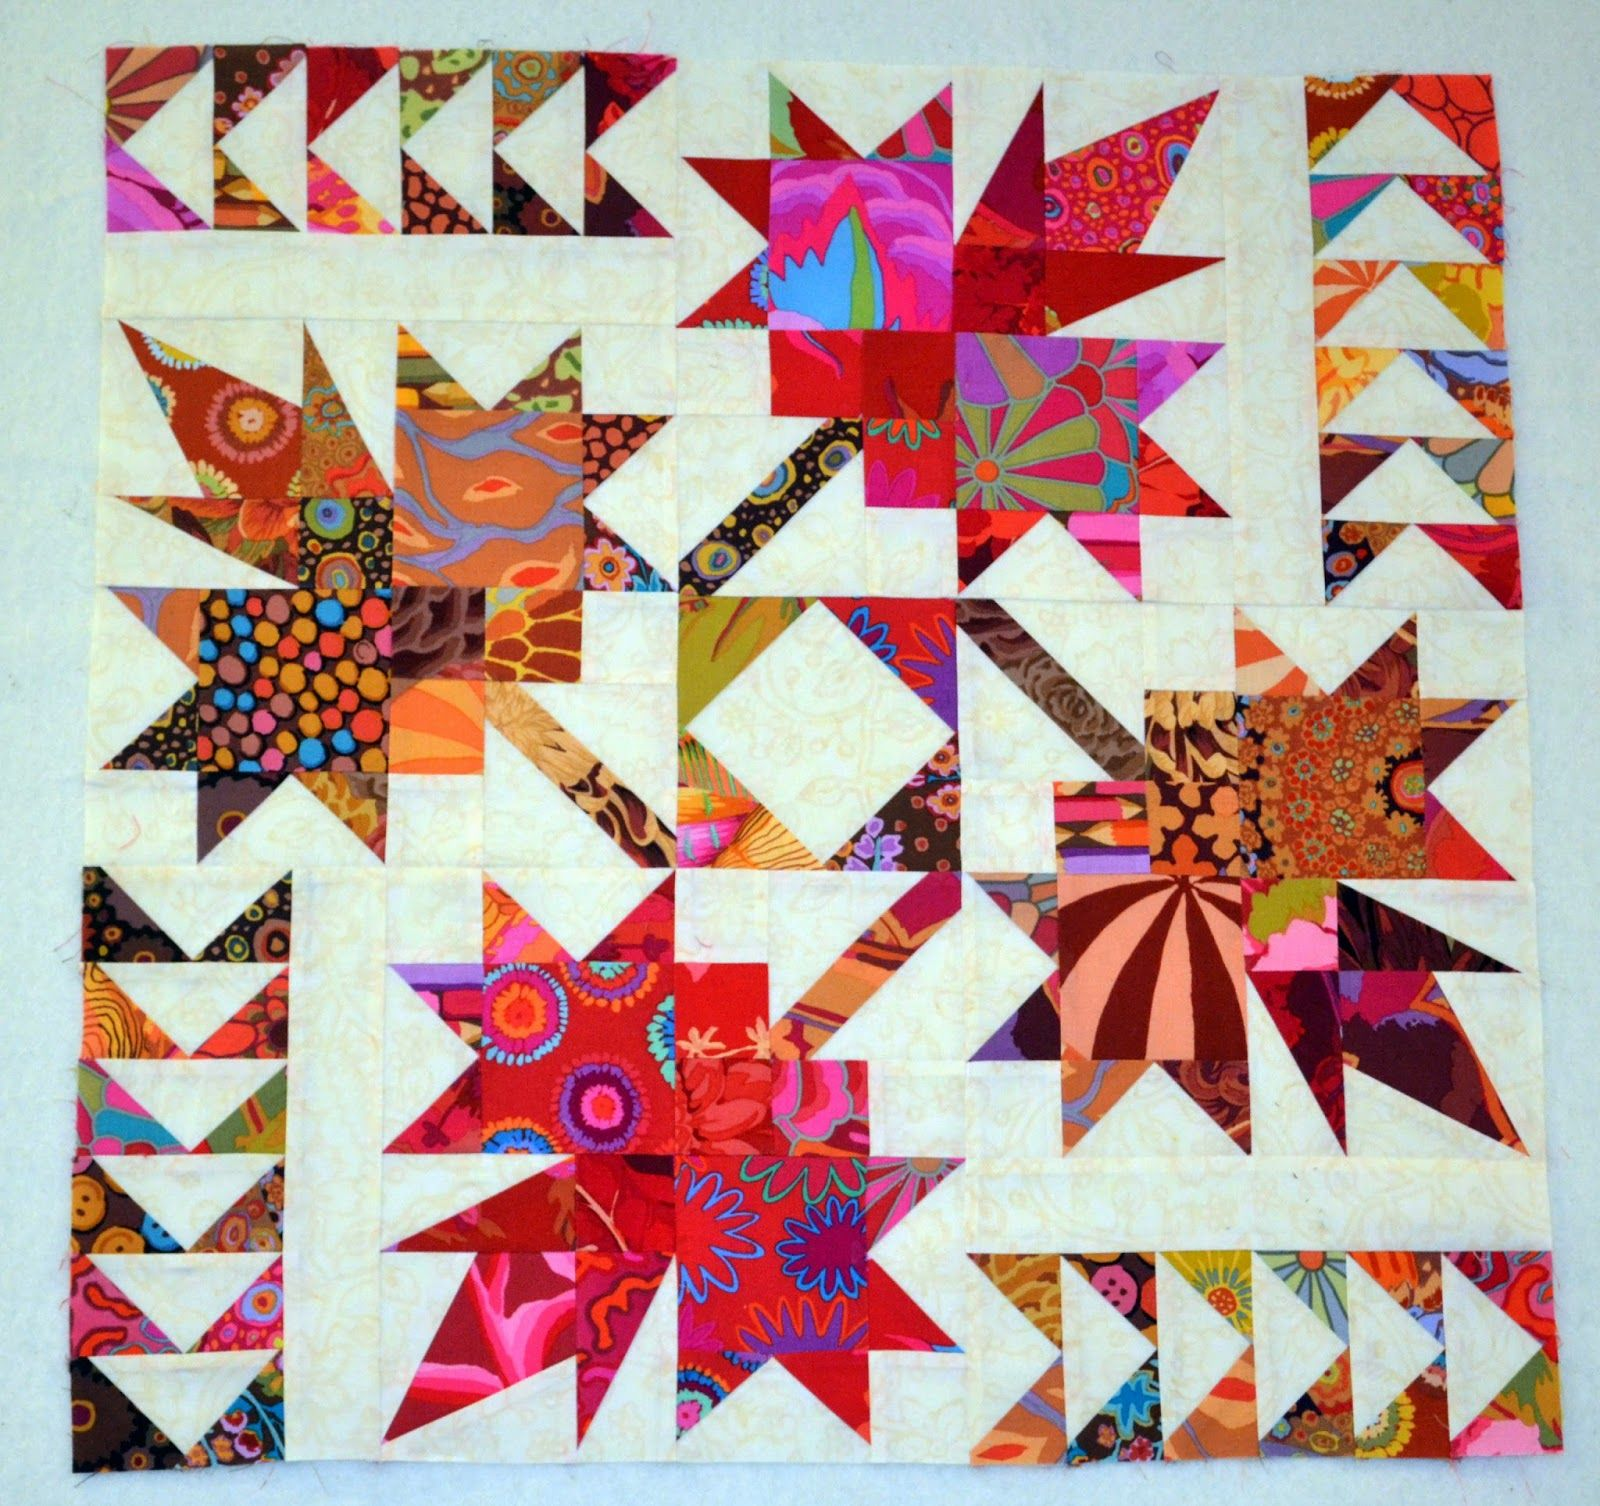 Sew On The Go | Quilt Designer & Studio 180 Design Certified Instructor: A New Deb Tucker Pattern for our Northern Neighbors!